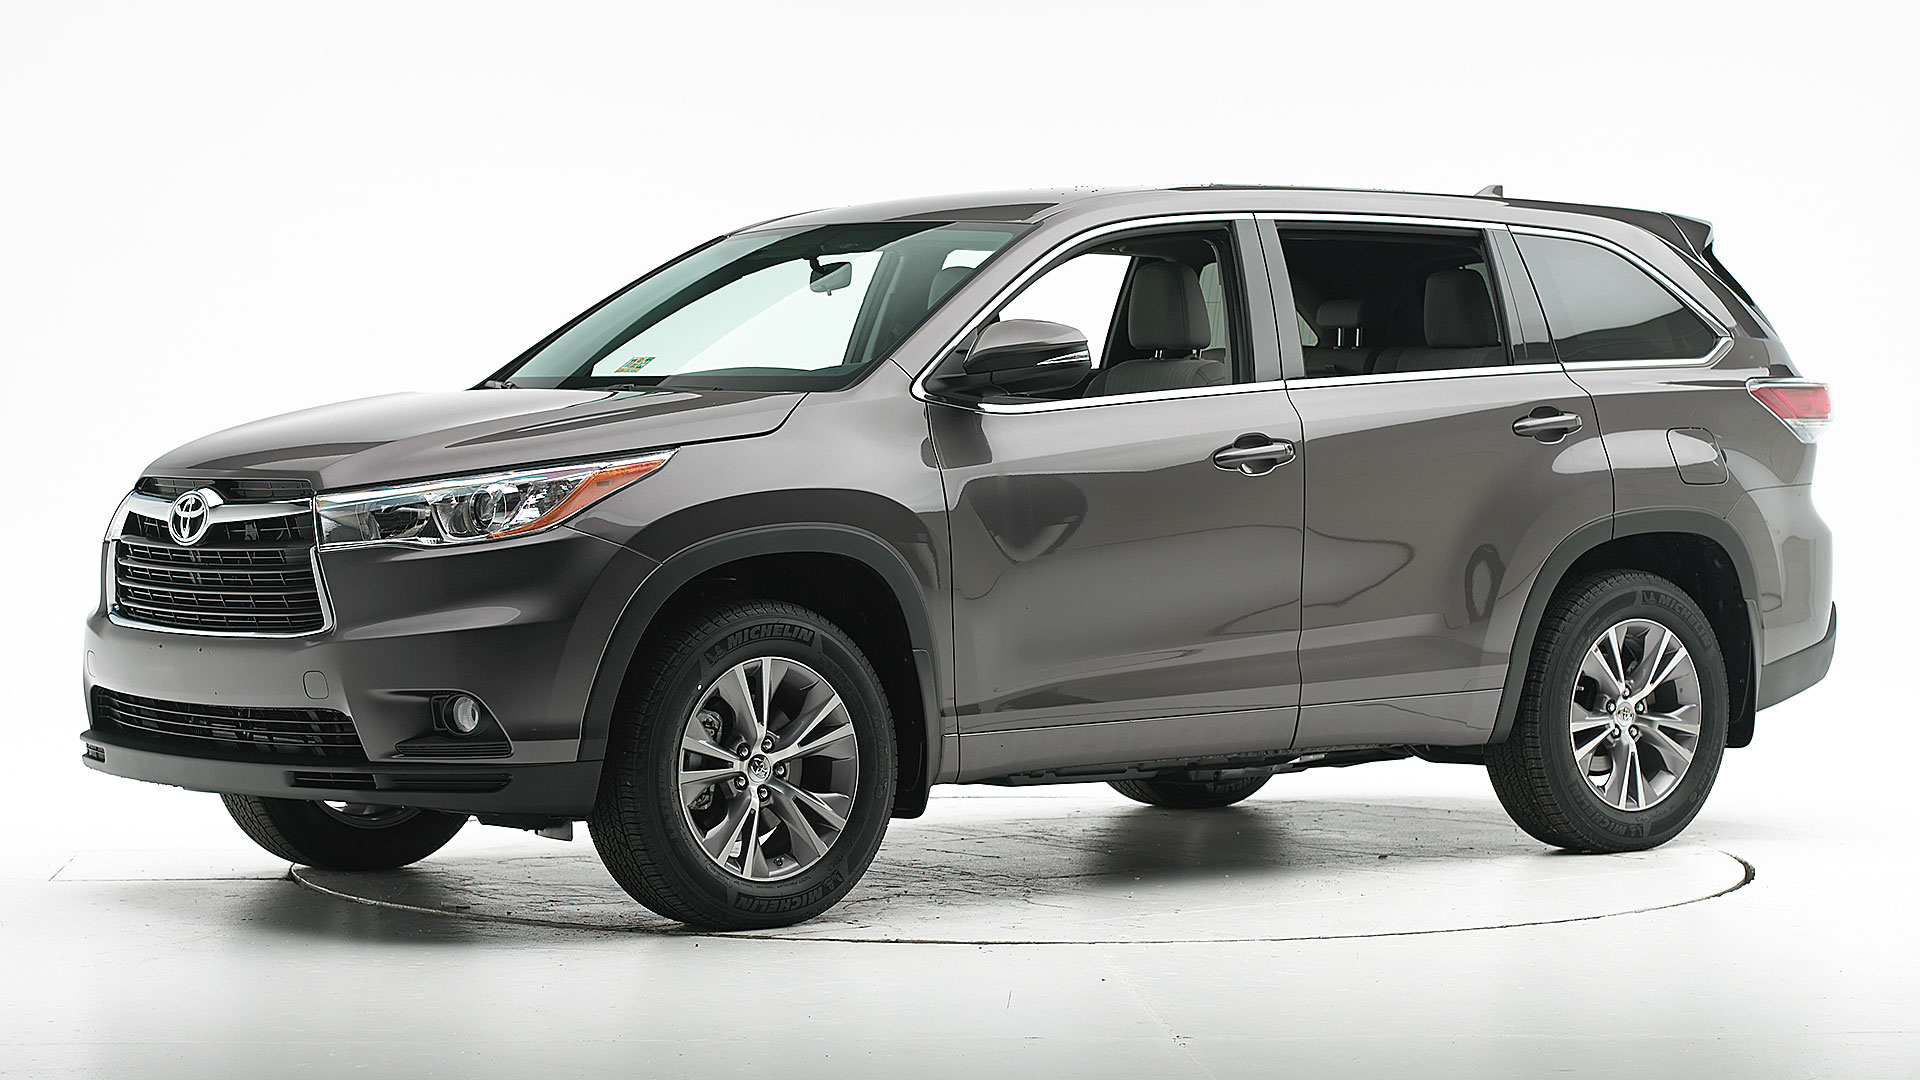 2014 Toyota Highlander 4-door SUV